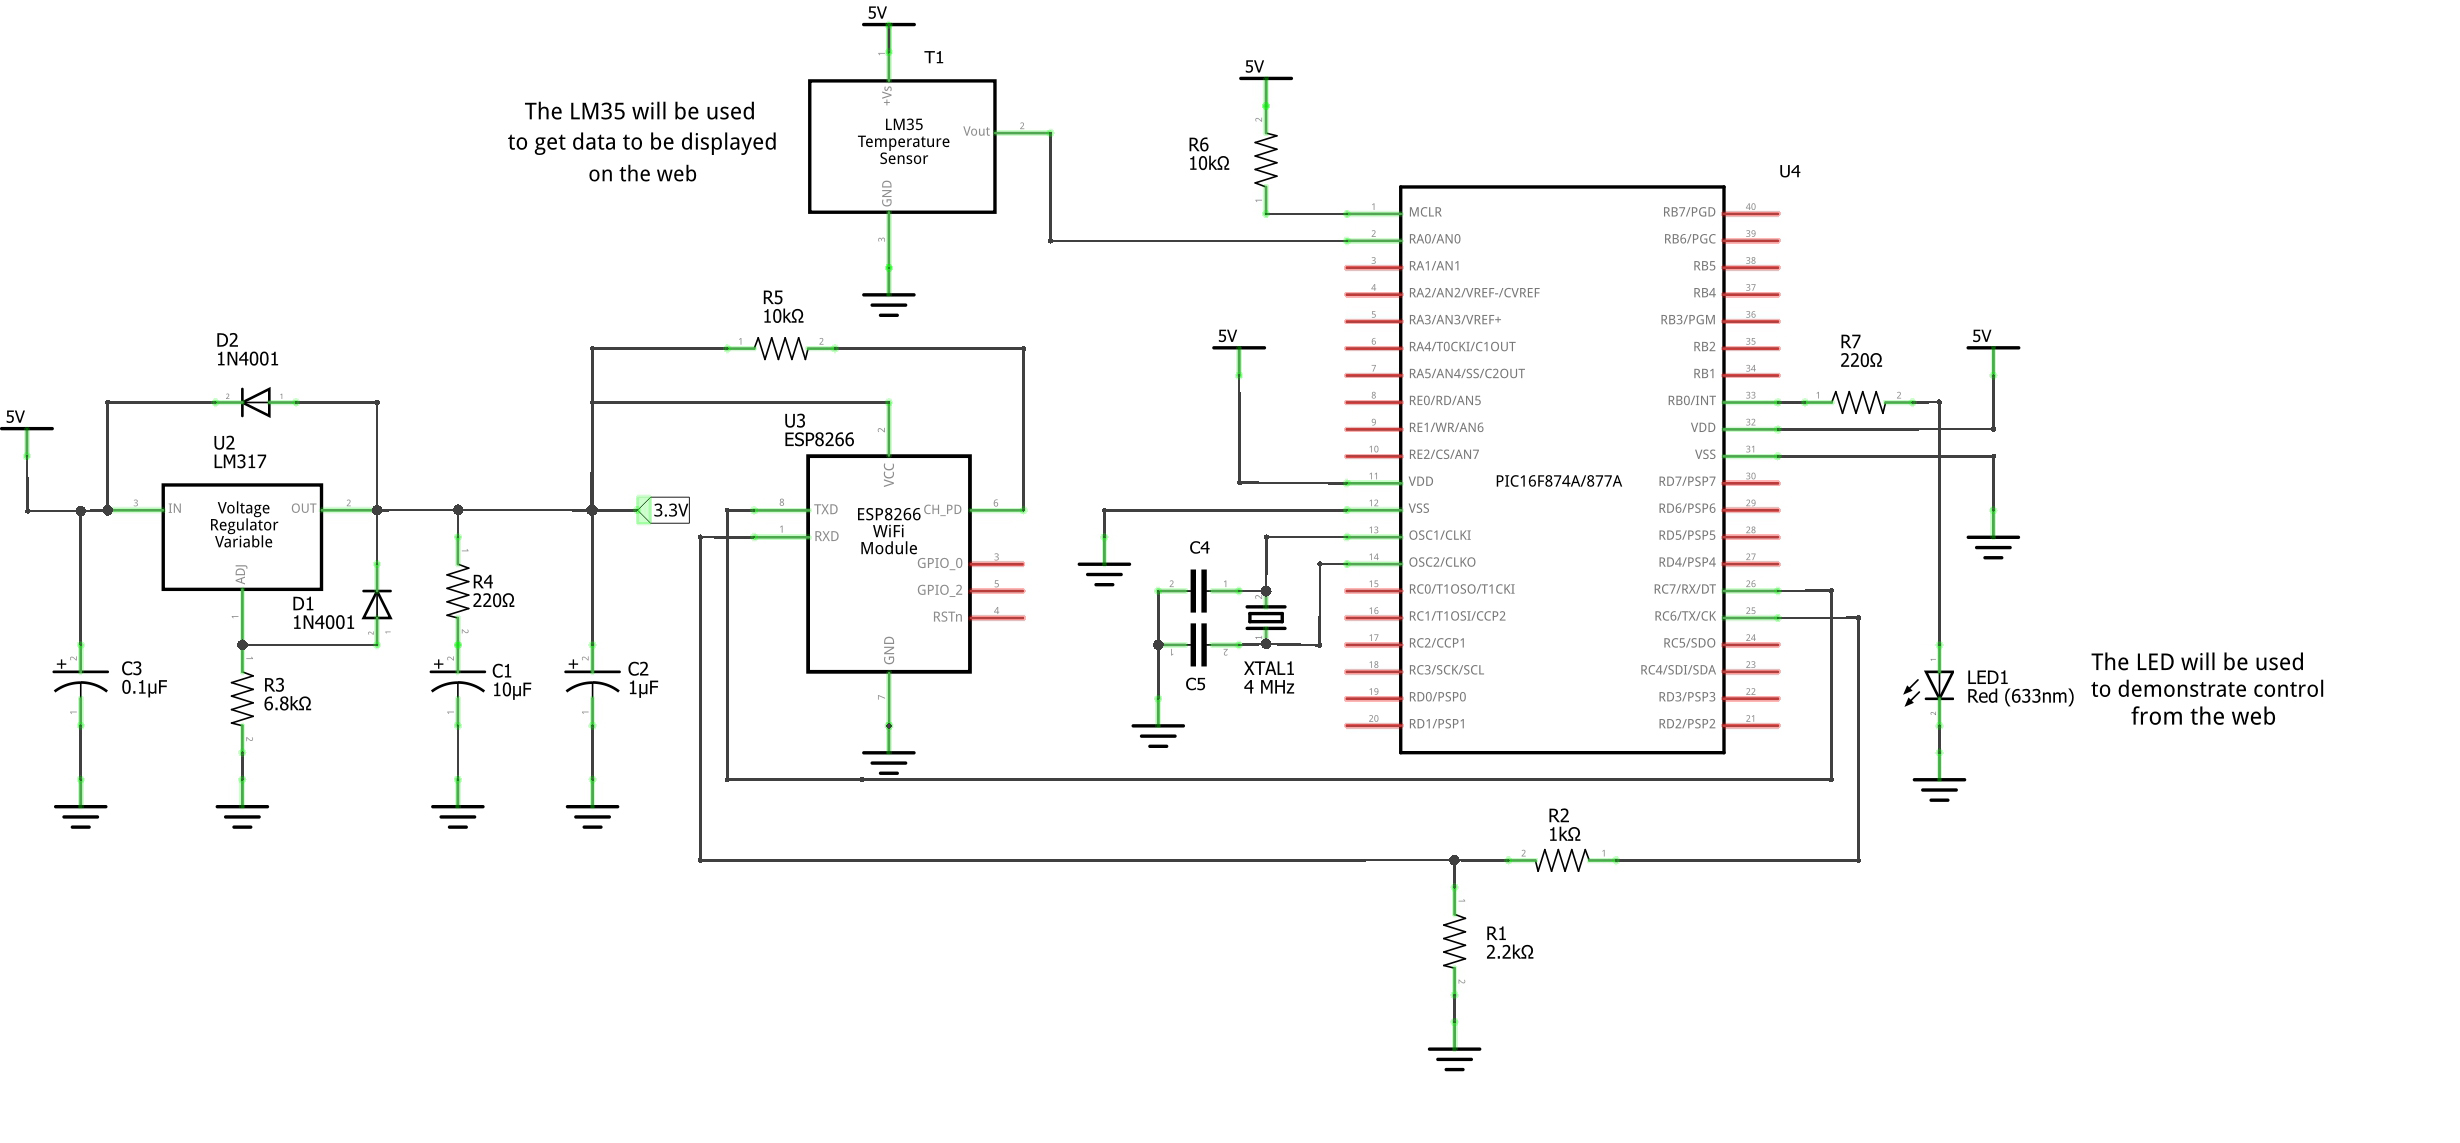 Pic16f877 Internet Creating Web Based Pic Apps Teach Me Analog To Digital Converter Using Pic16f877a Microcontroller Heres Now The Complete Circuit For This Tutorial